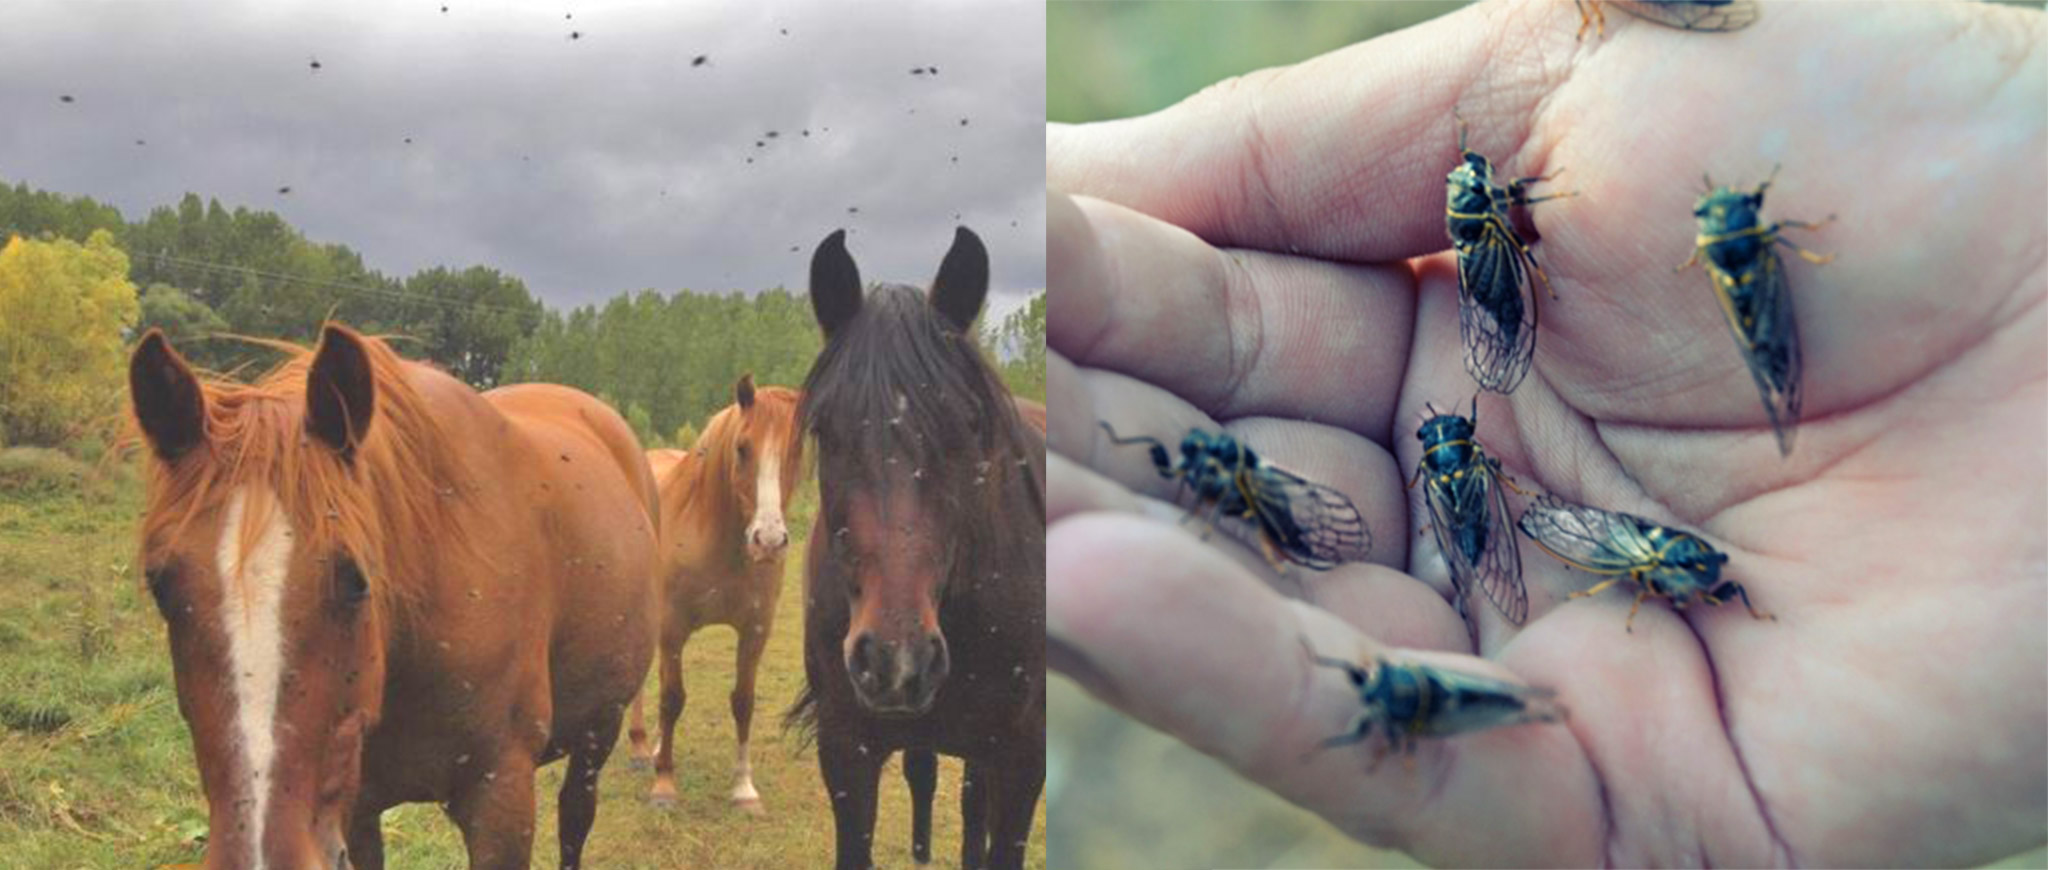 Horse flies, Image source: google